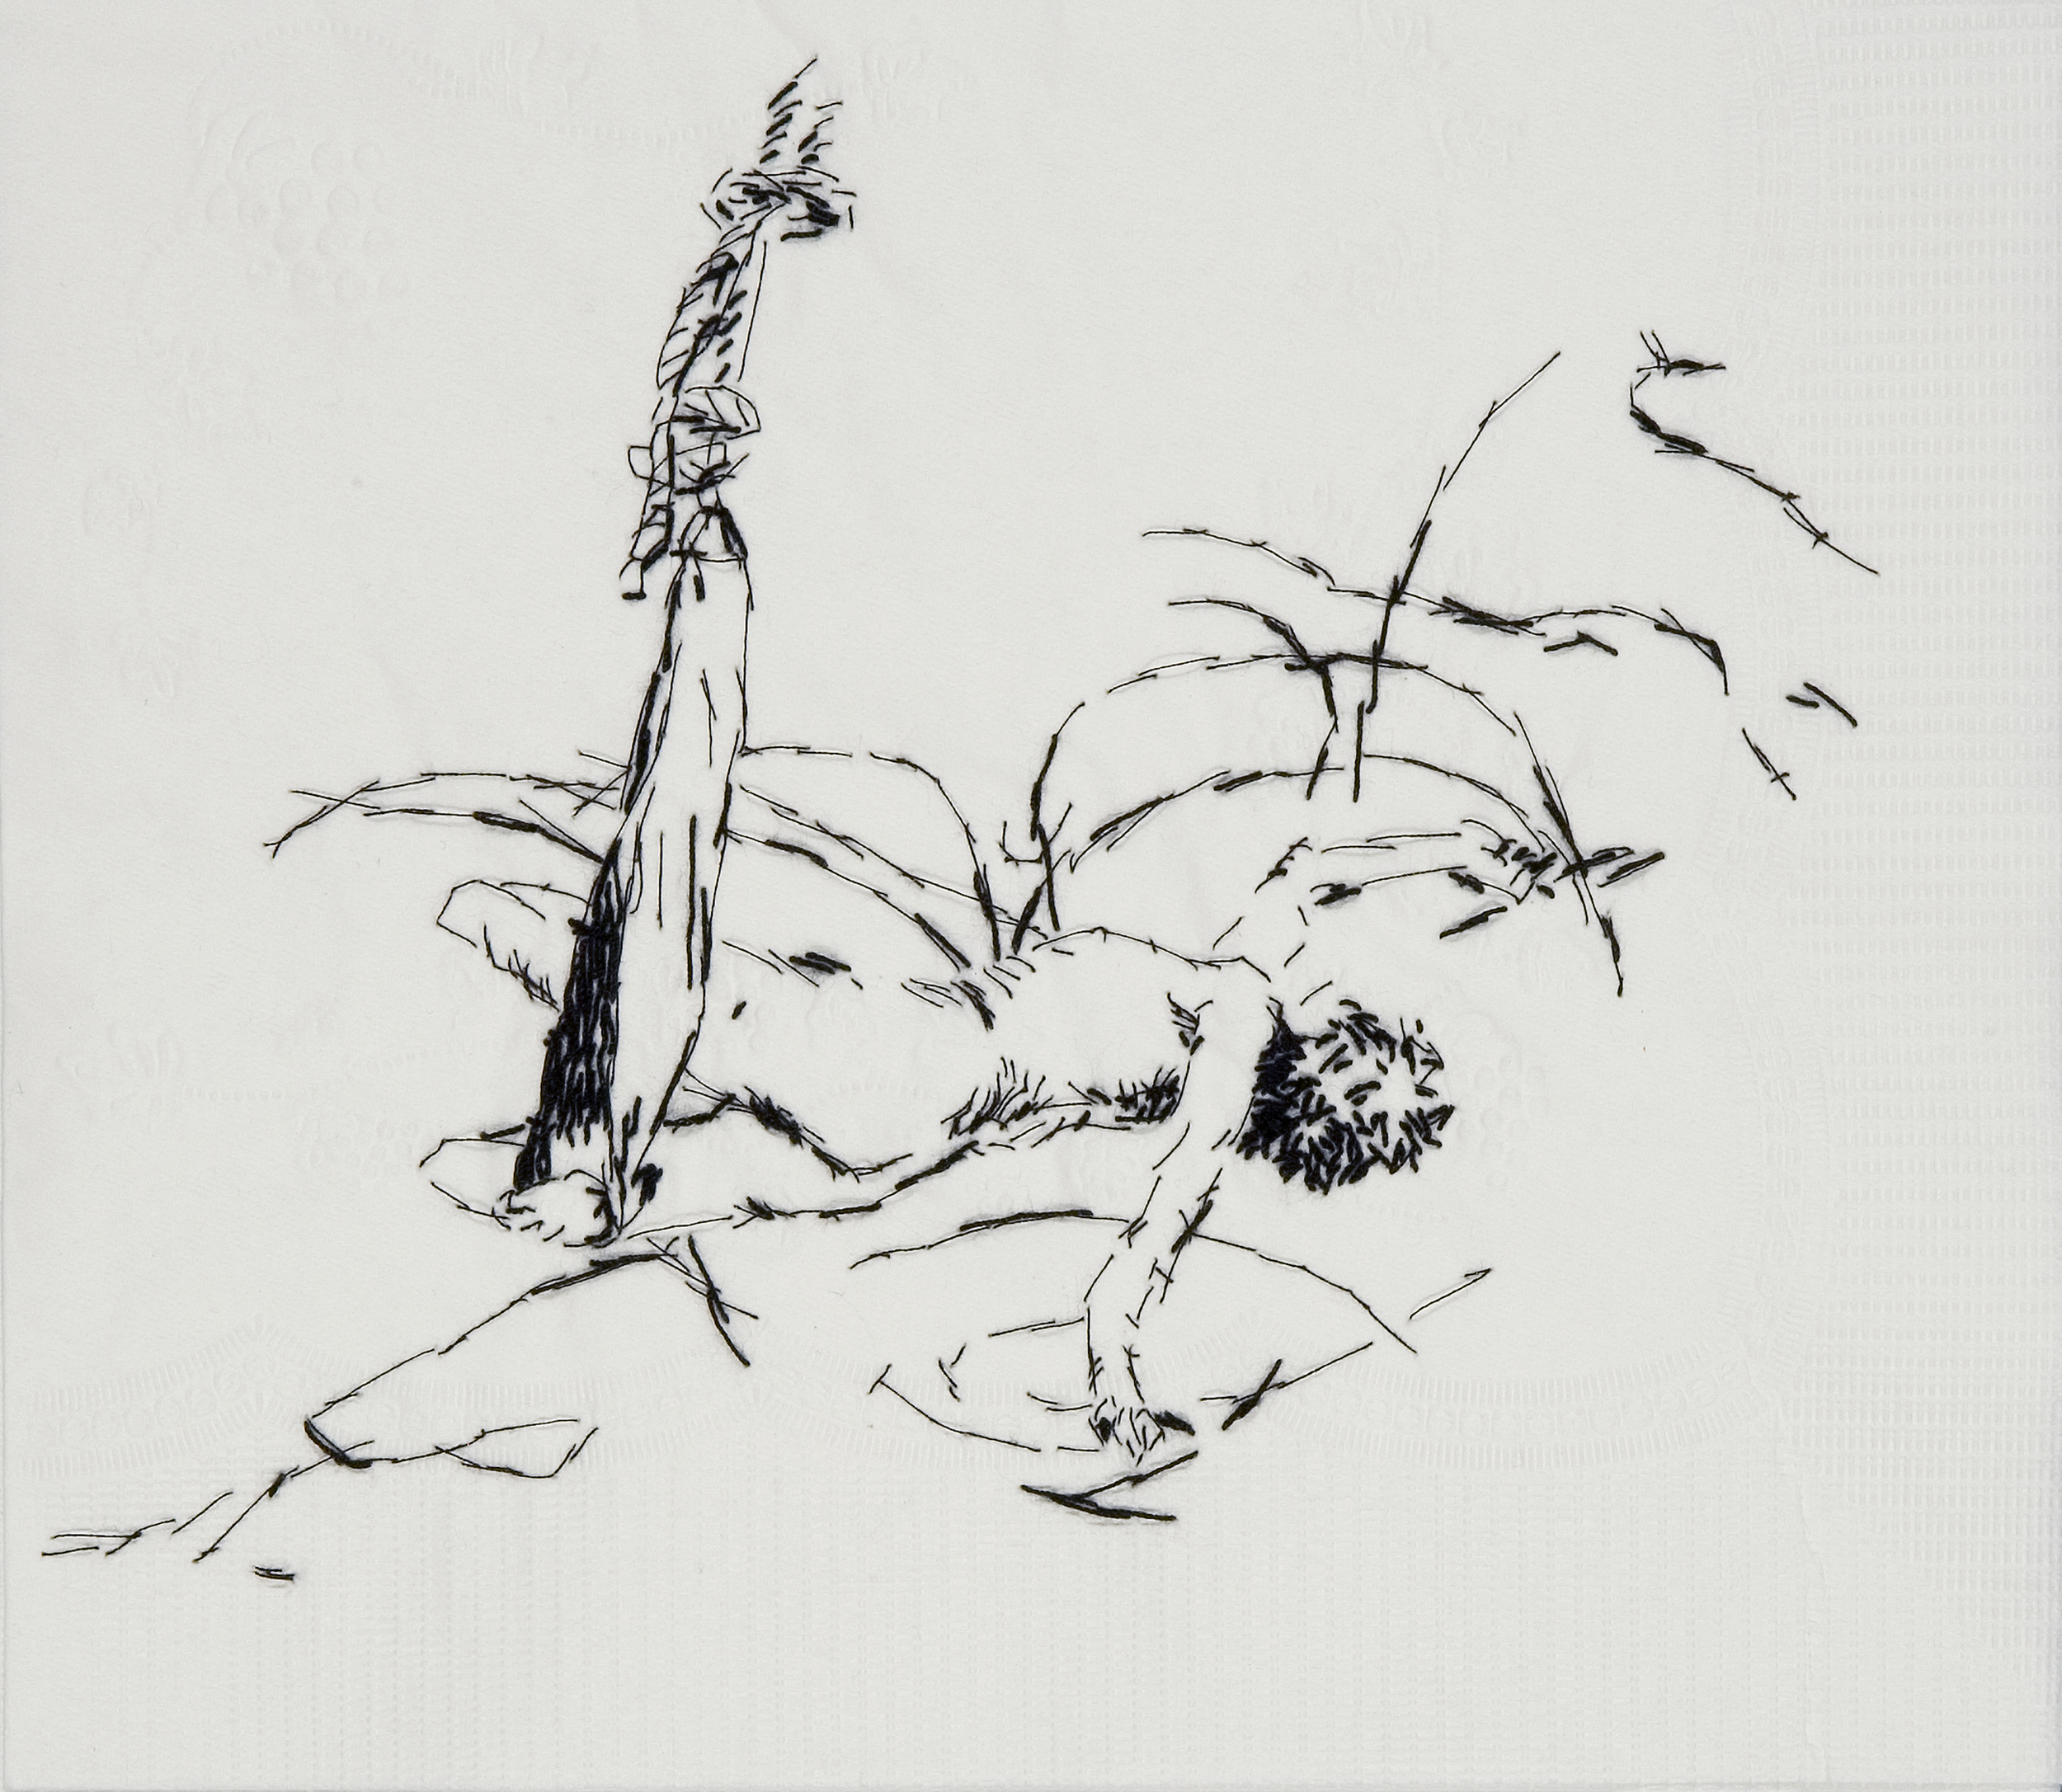 "Sister Wife Carolee (Up to and Including Her Limits, 1973-76)  Black thread on paper napkin, 7.5"" x 8.5"", 2008"